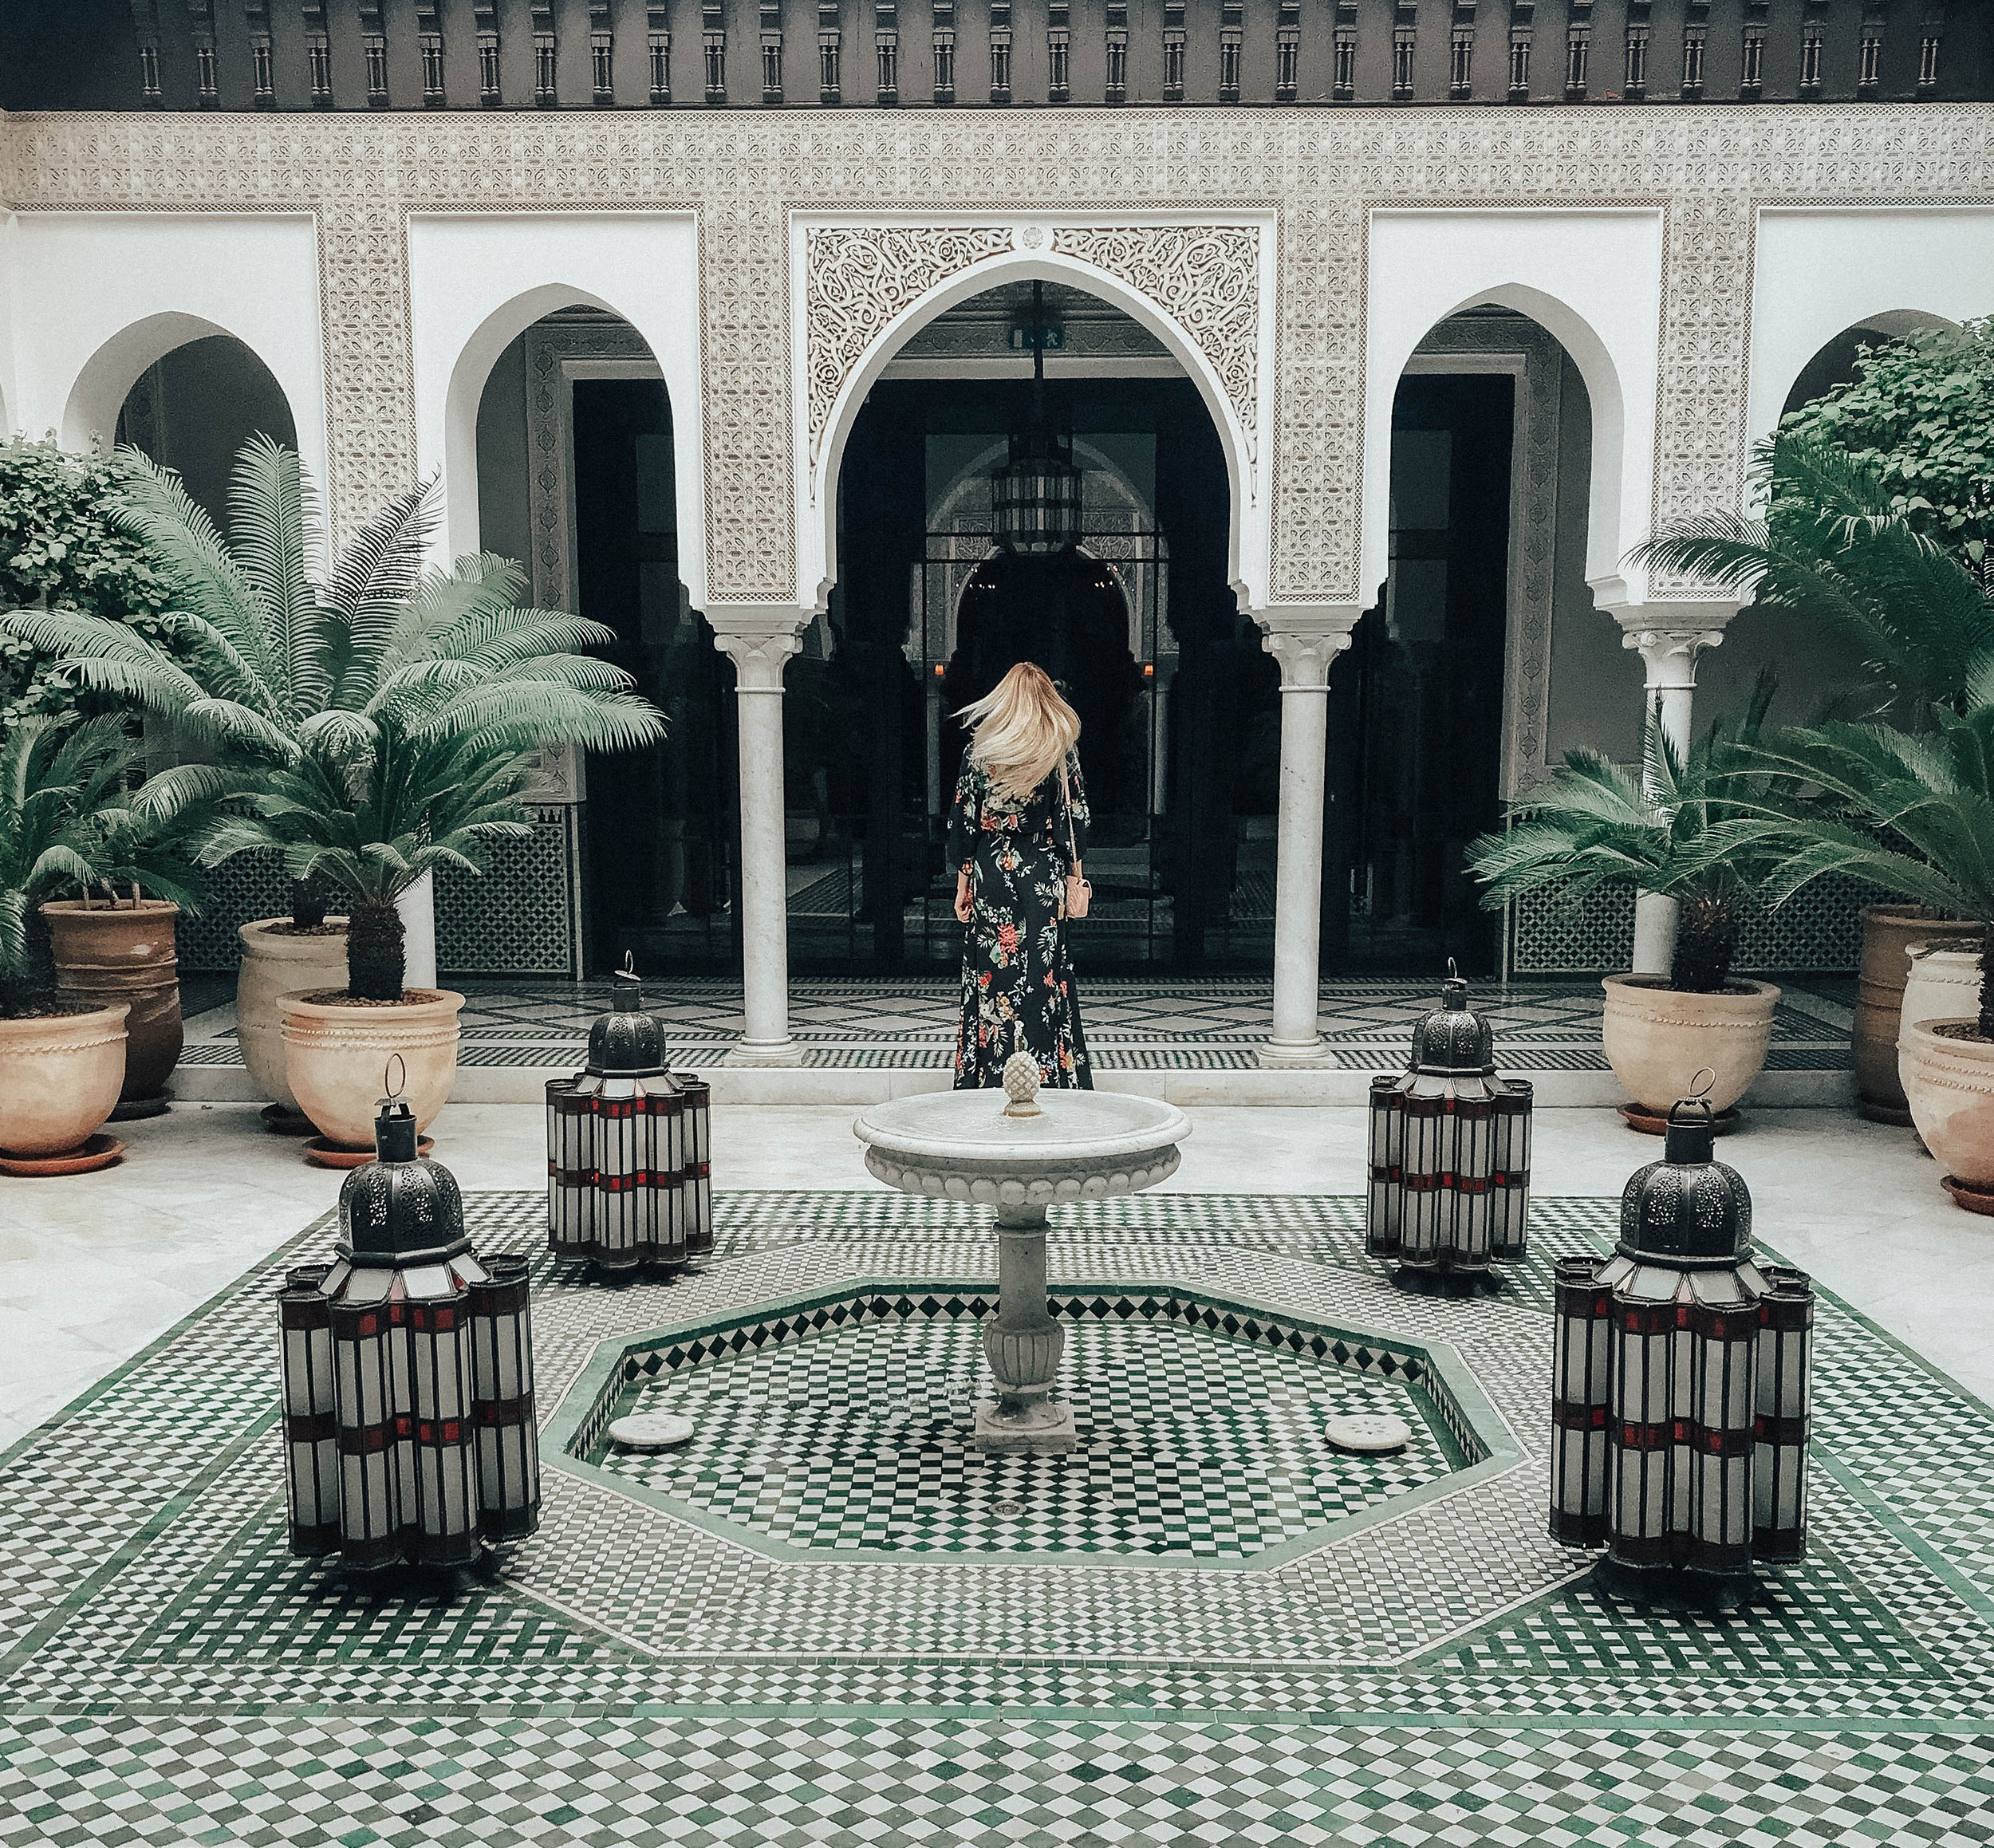 Vacation Style, Marrakech Morocco